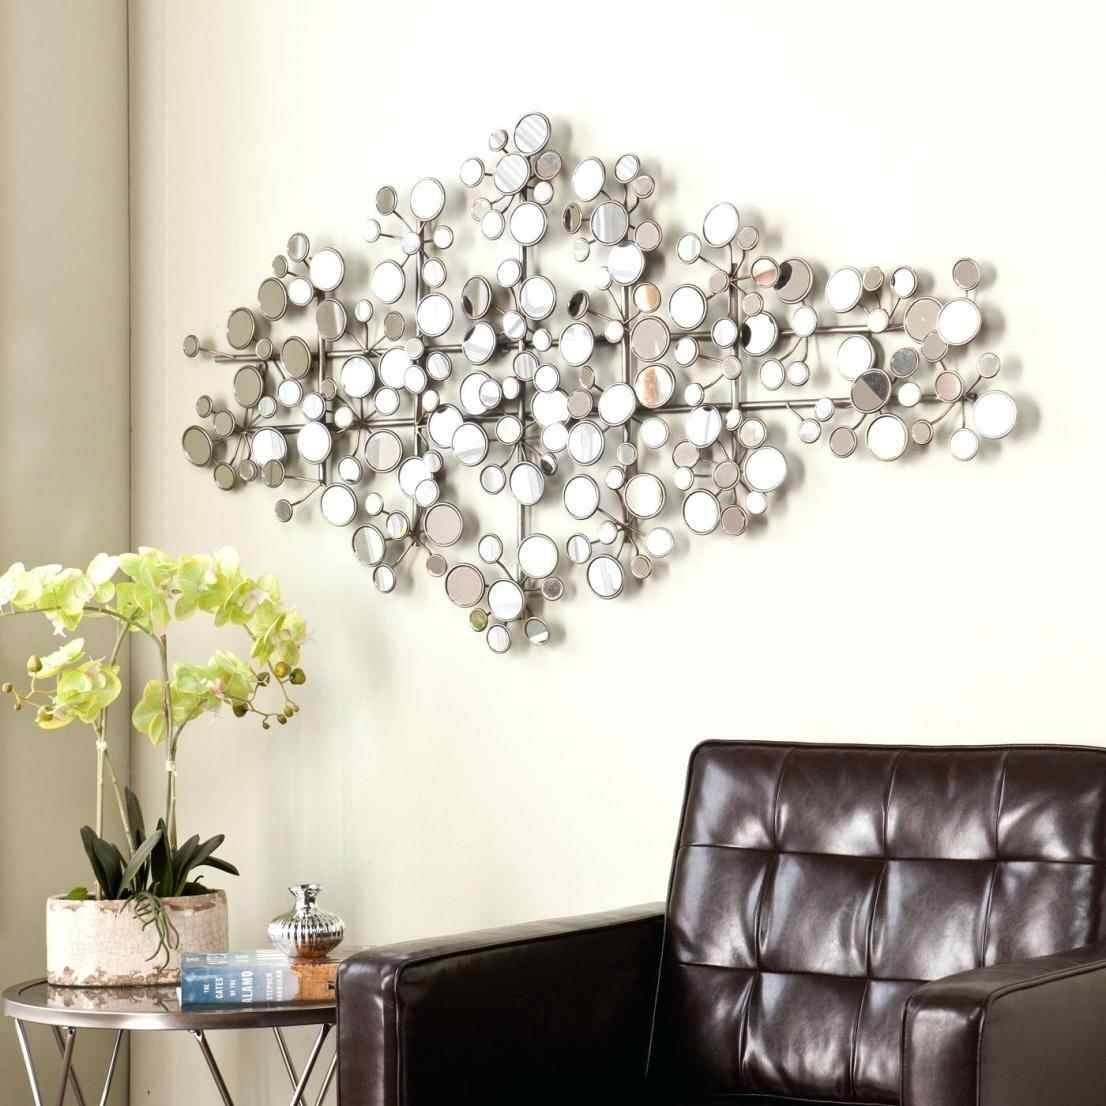 Simple Unusual Metal Wall Art Ideas Black Metal Wall Art Unusual Pertaining To Most Current Unusual Metal Wall Art (View 12 of 20)